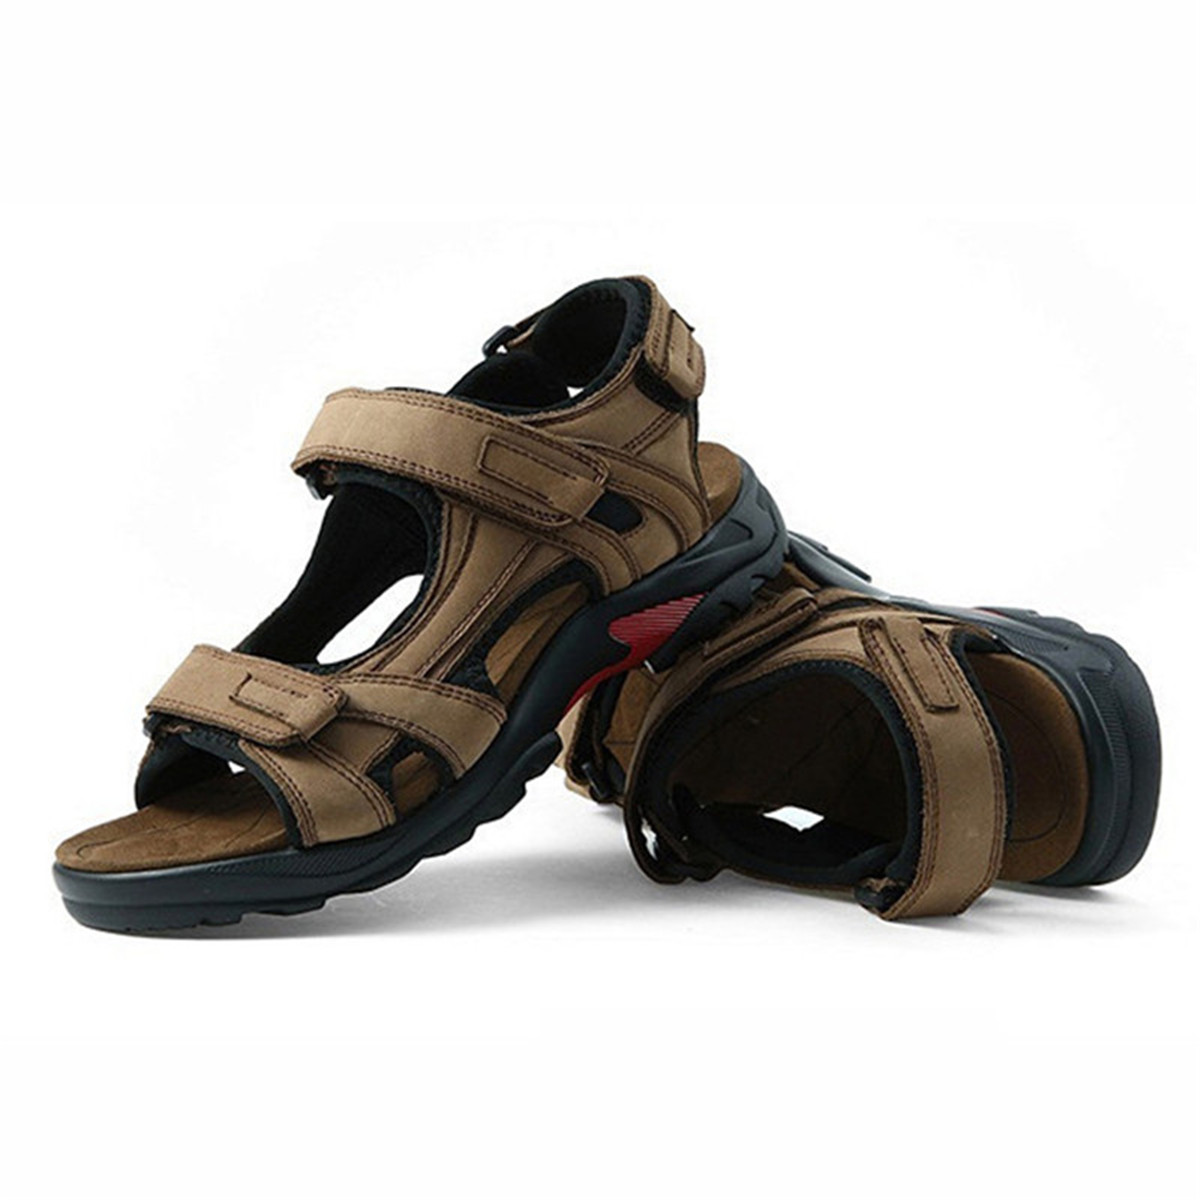 Gracosy Mens Casual Sport Shoes Leather Flat Hook-Loop Sandals For Home Work Outdoor 2 Colors